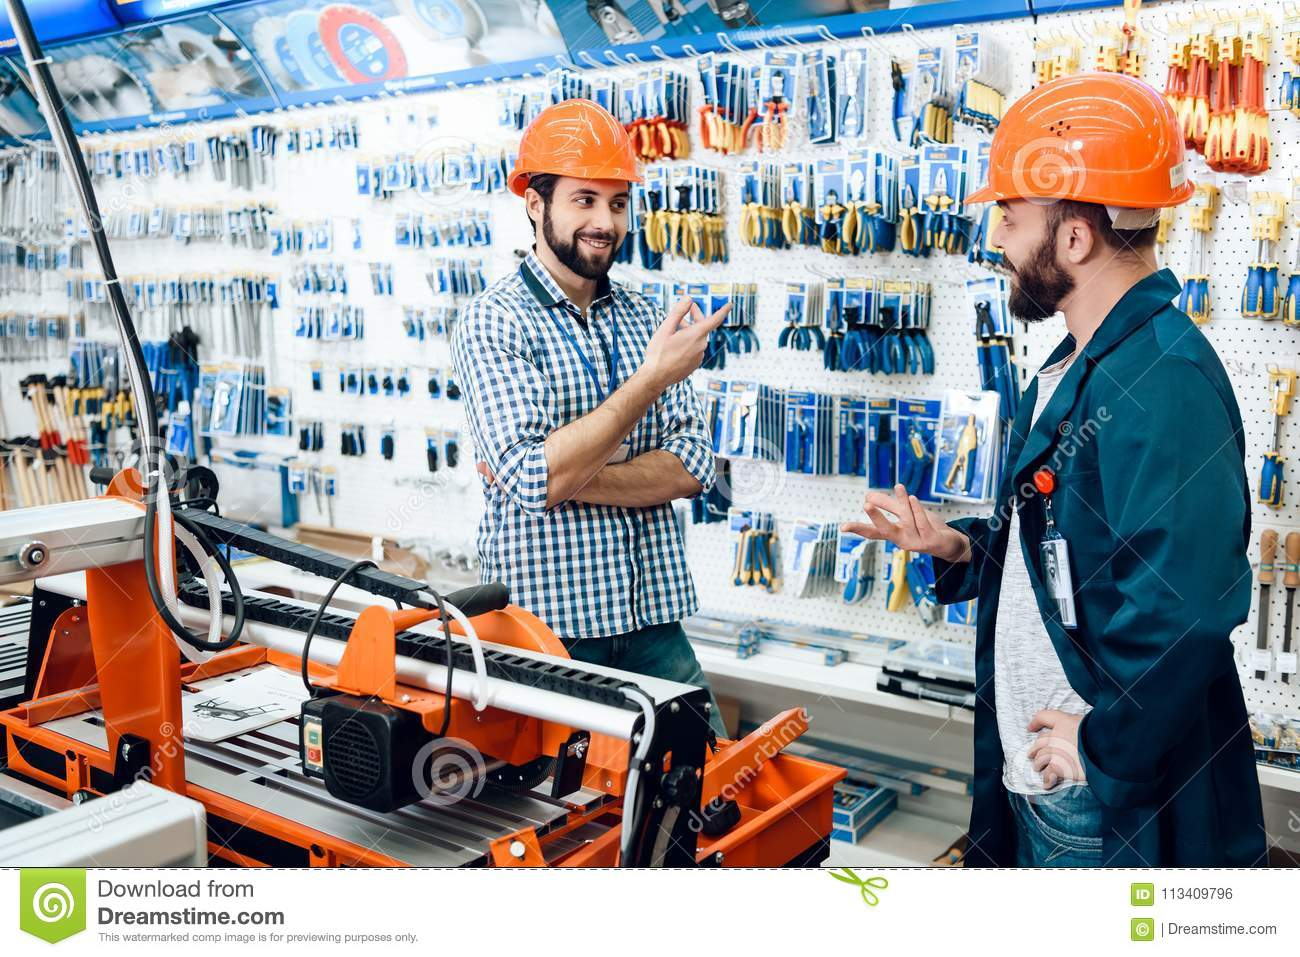 Two Salesmen Are Discussing Equipment Selection Near Woodworking